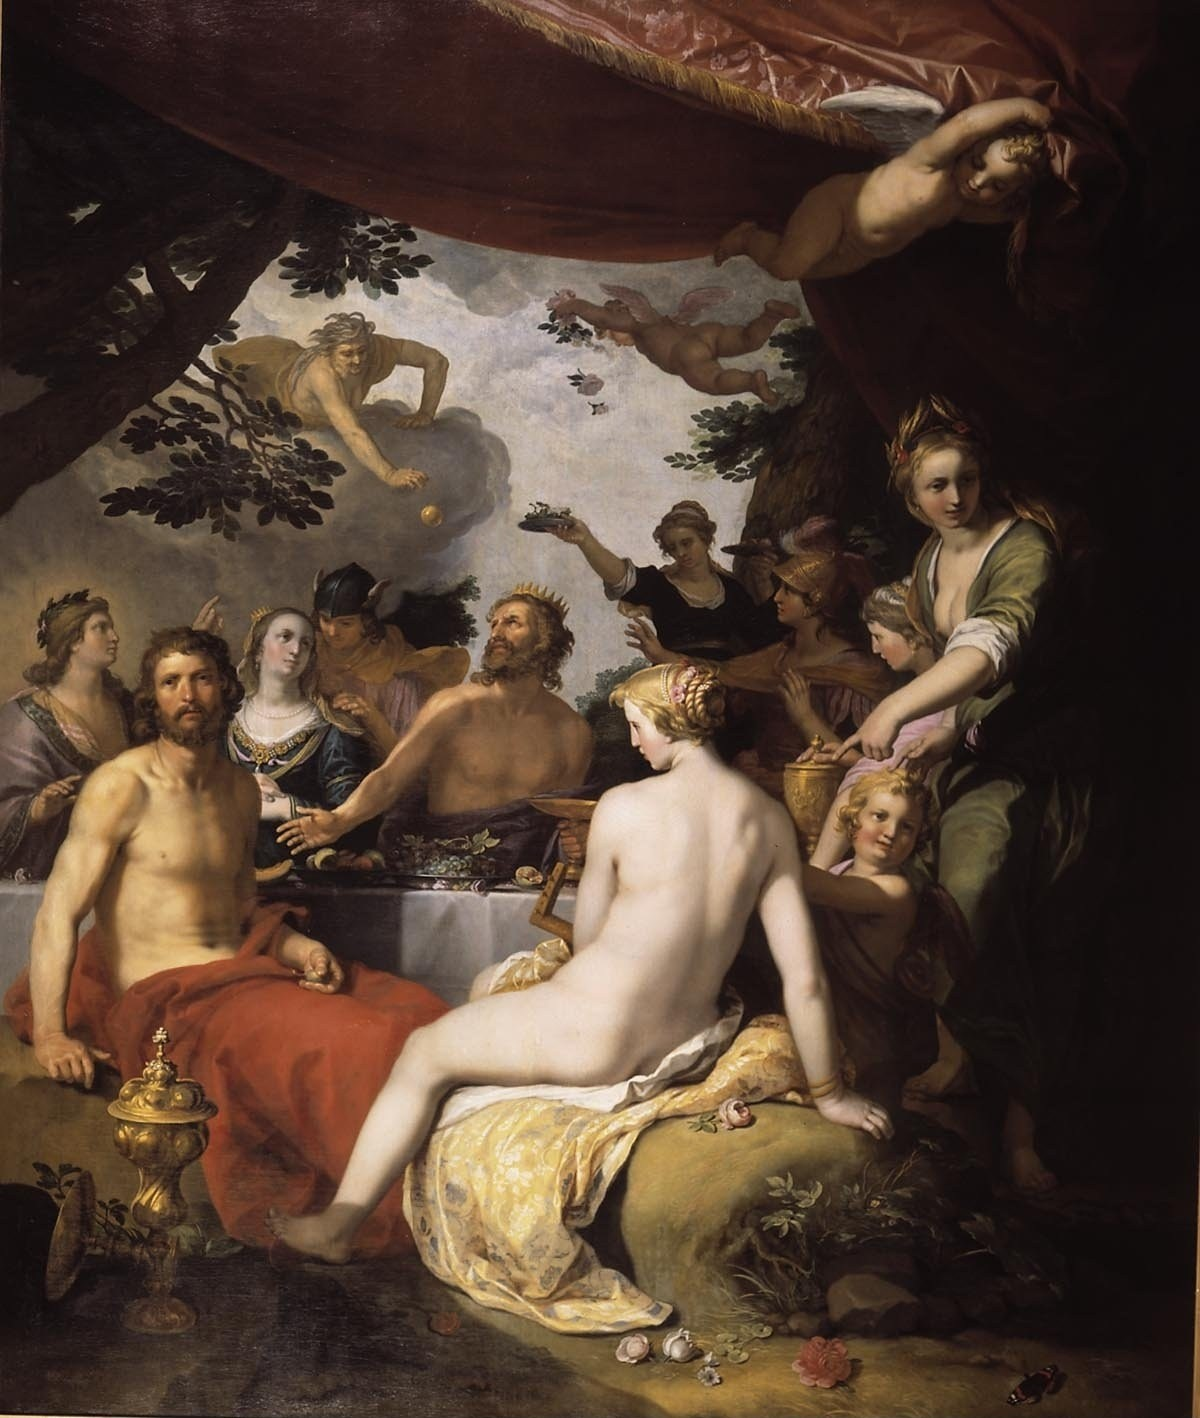 http://upload.wikimedia.org/wikipedia/commons/7/7a/The_feast_of_the_gods_at_the_wedding_of_Peleus_and_Thetis.jpg